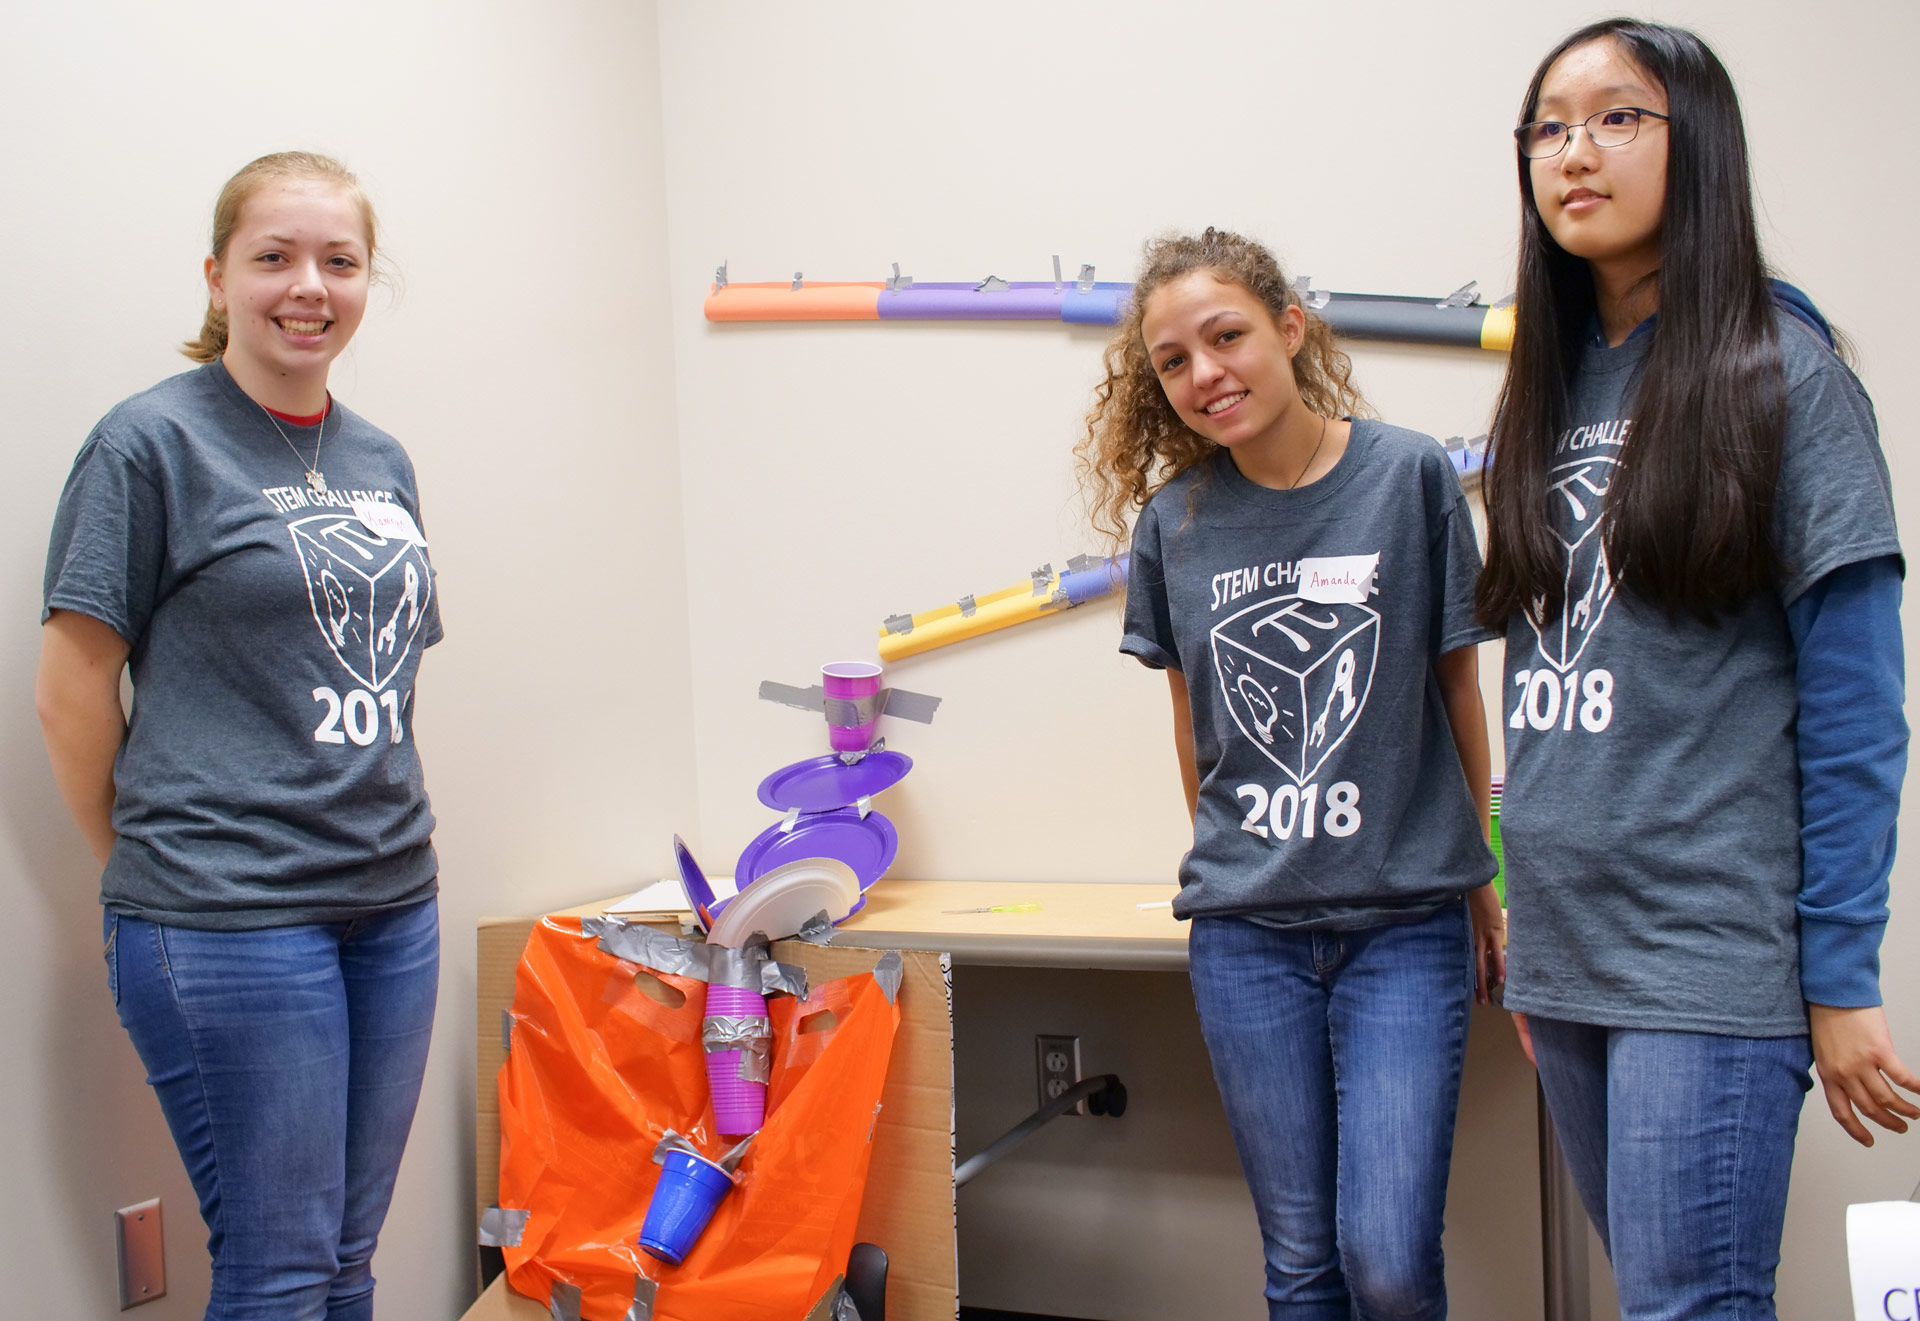 STEM Challenge brings together innovative students